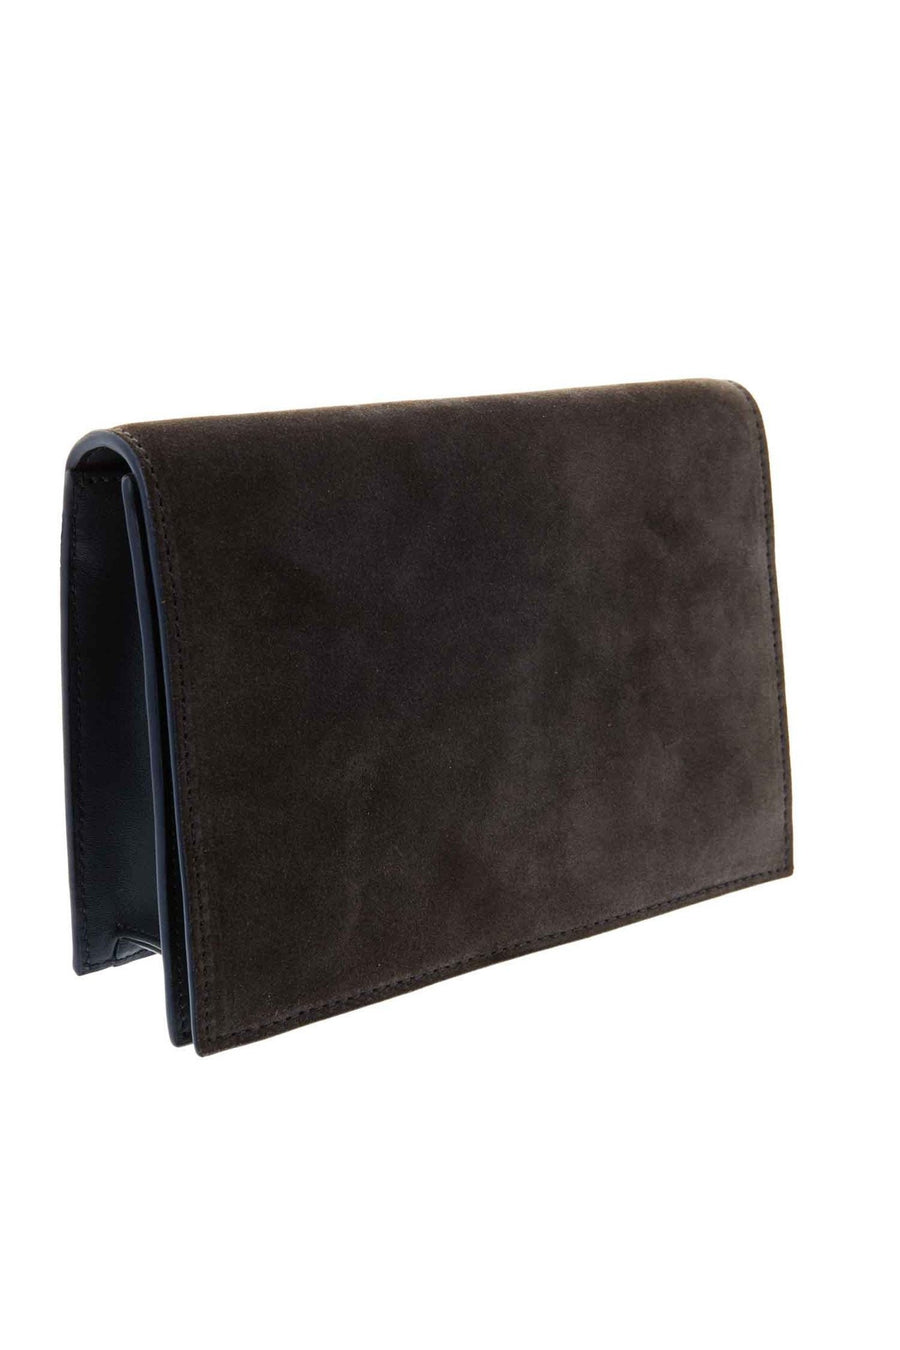 The Dark Grey Suede Leather Clutch by Peter Lang